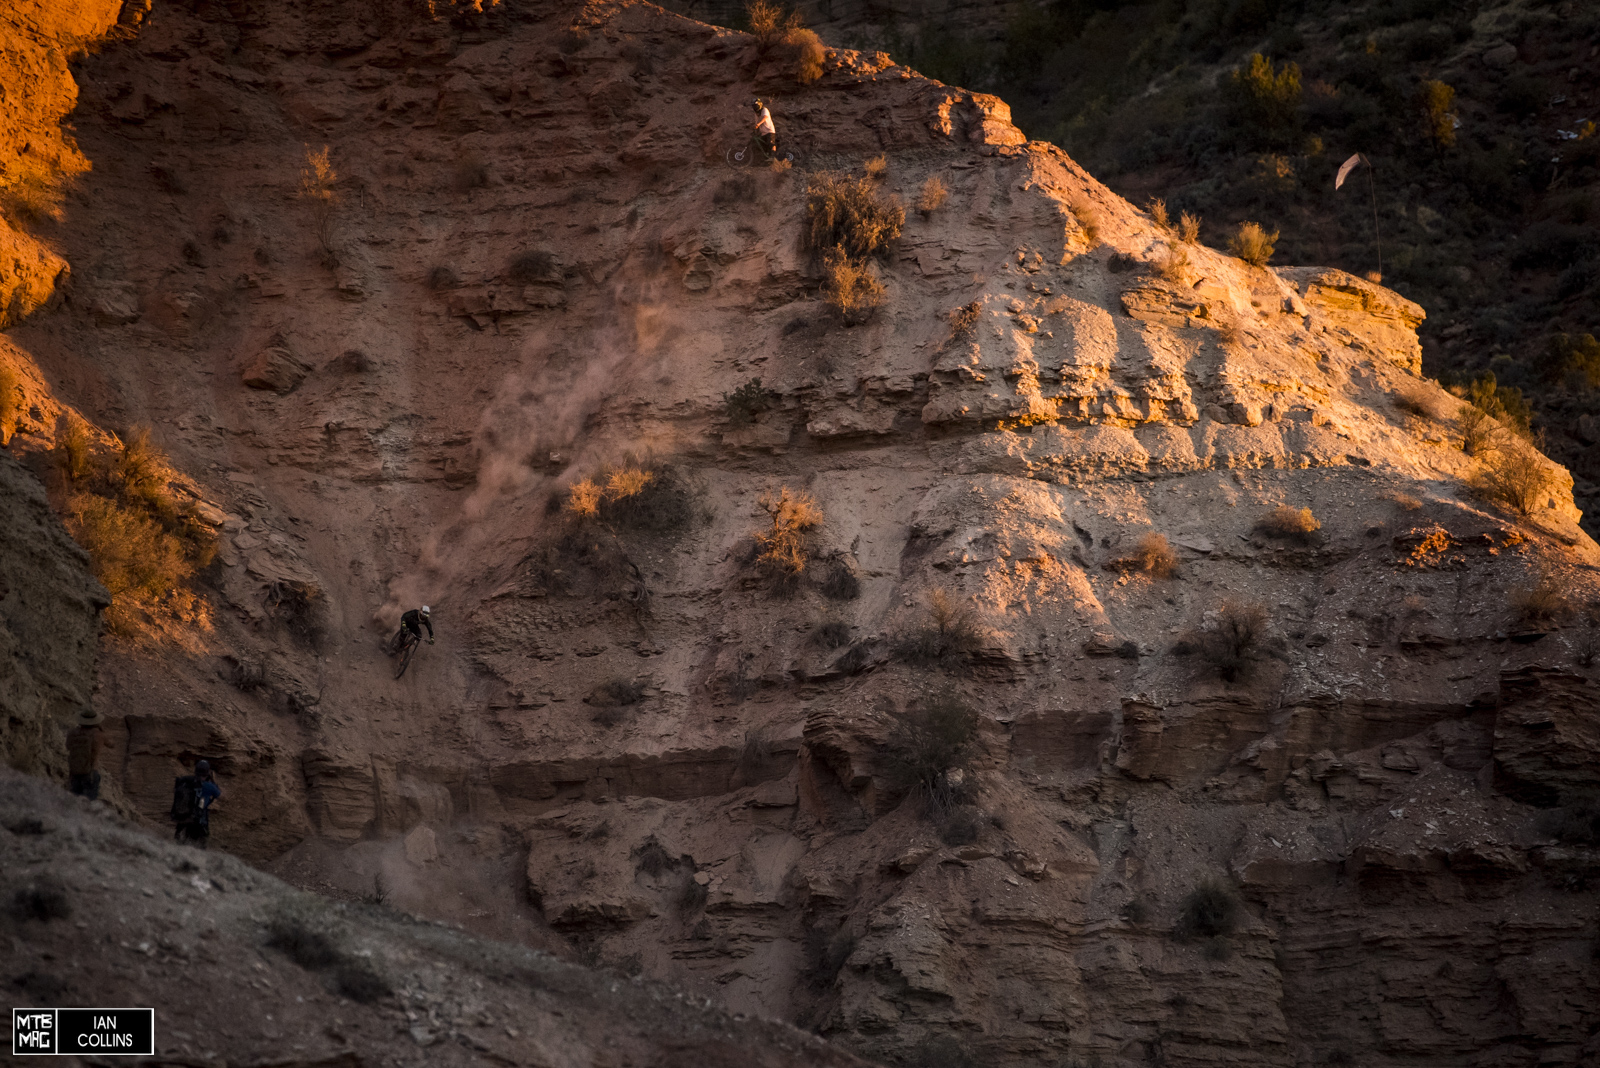 James Doerfling. The most understated and underrated in freeride. This could finally be his year at Rampage.